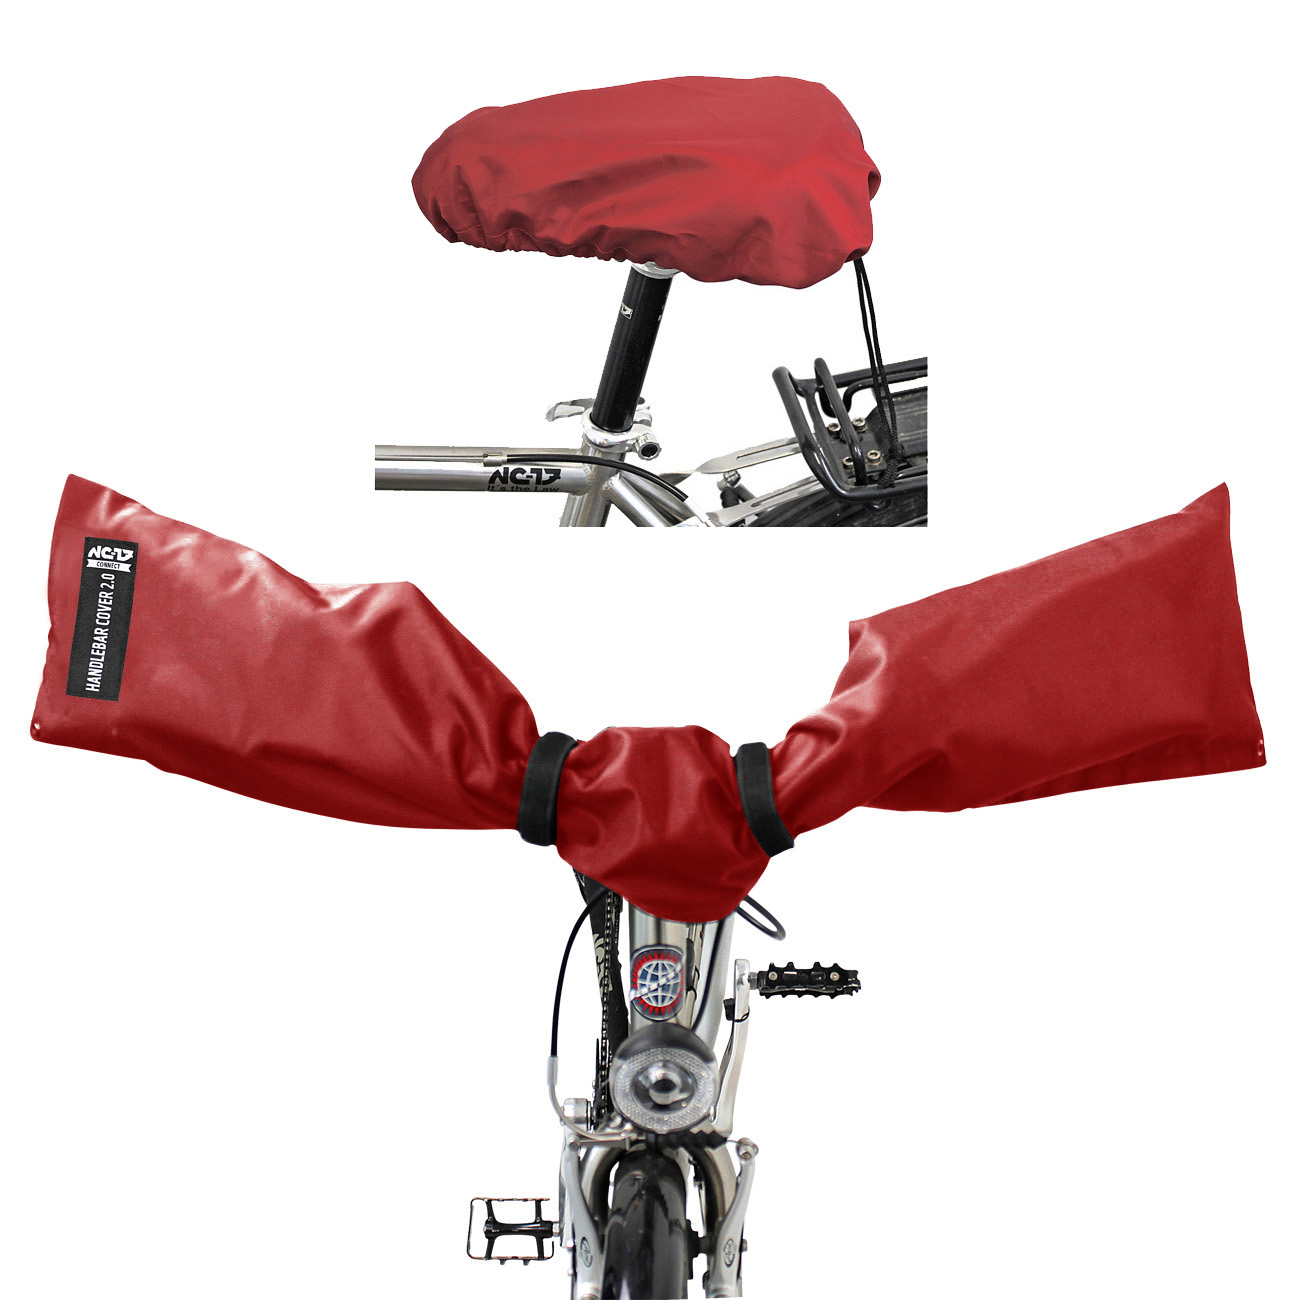 NC-17 Connect Handlebar + Seat Cover 2.0<br/>on size fits all, rot<br/>